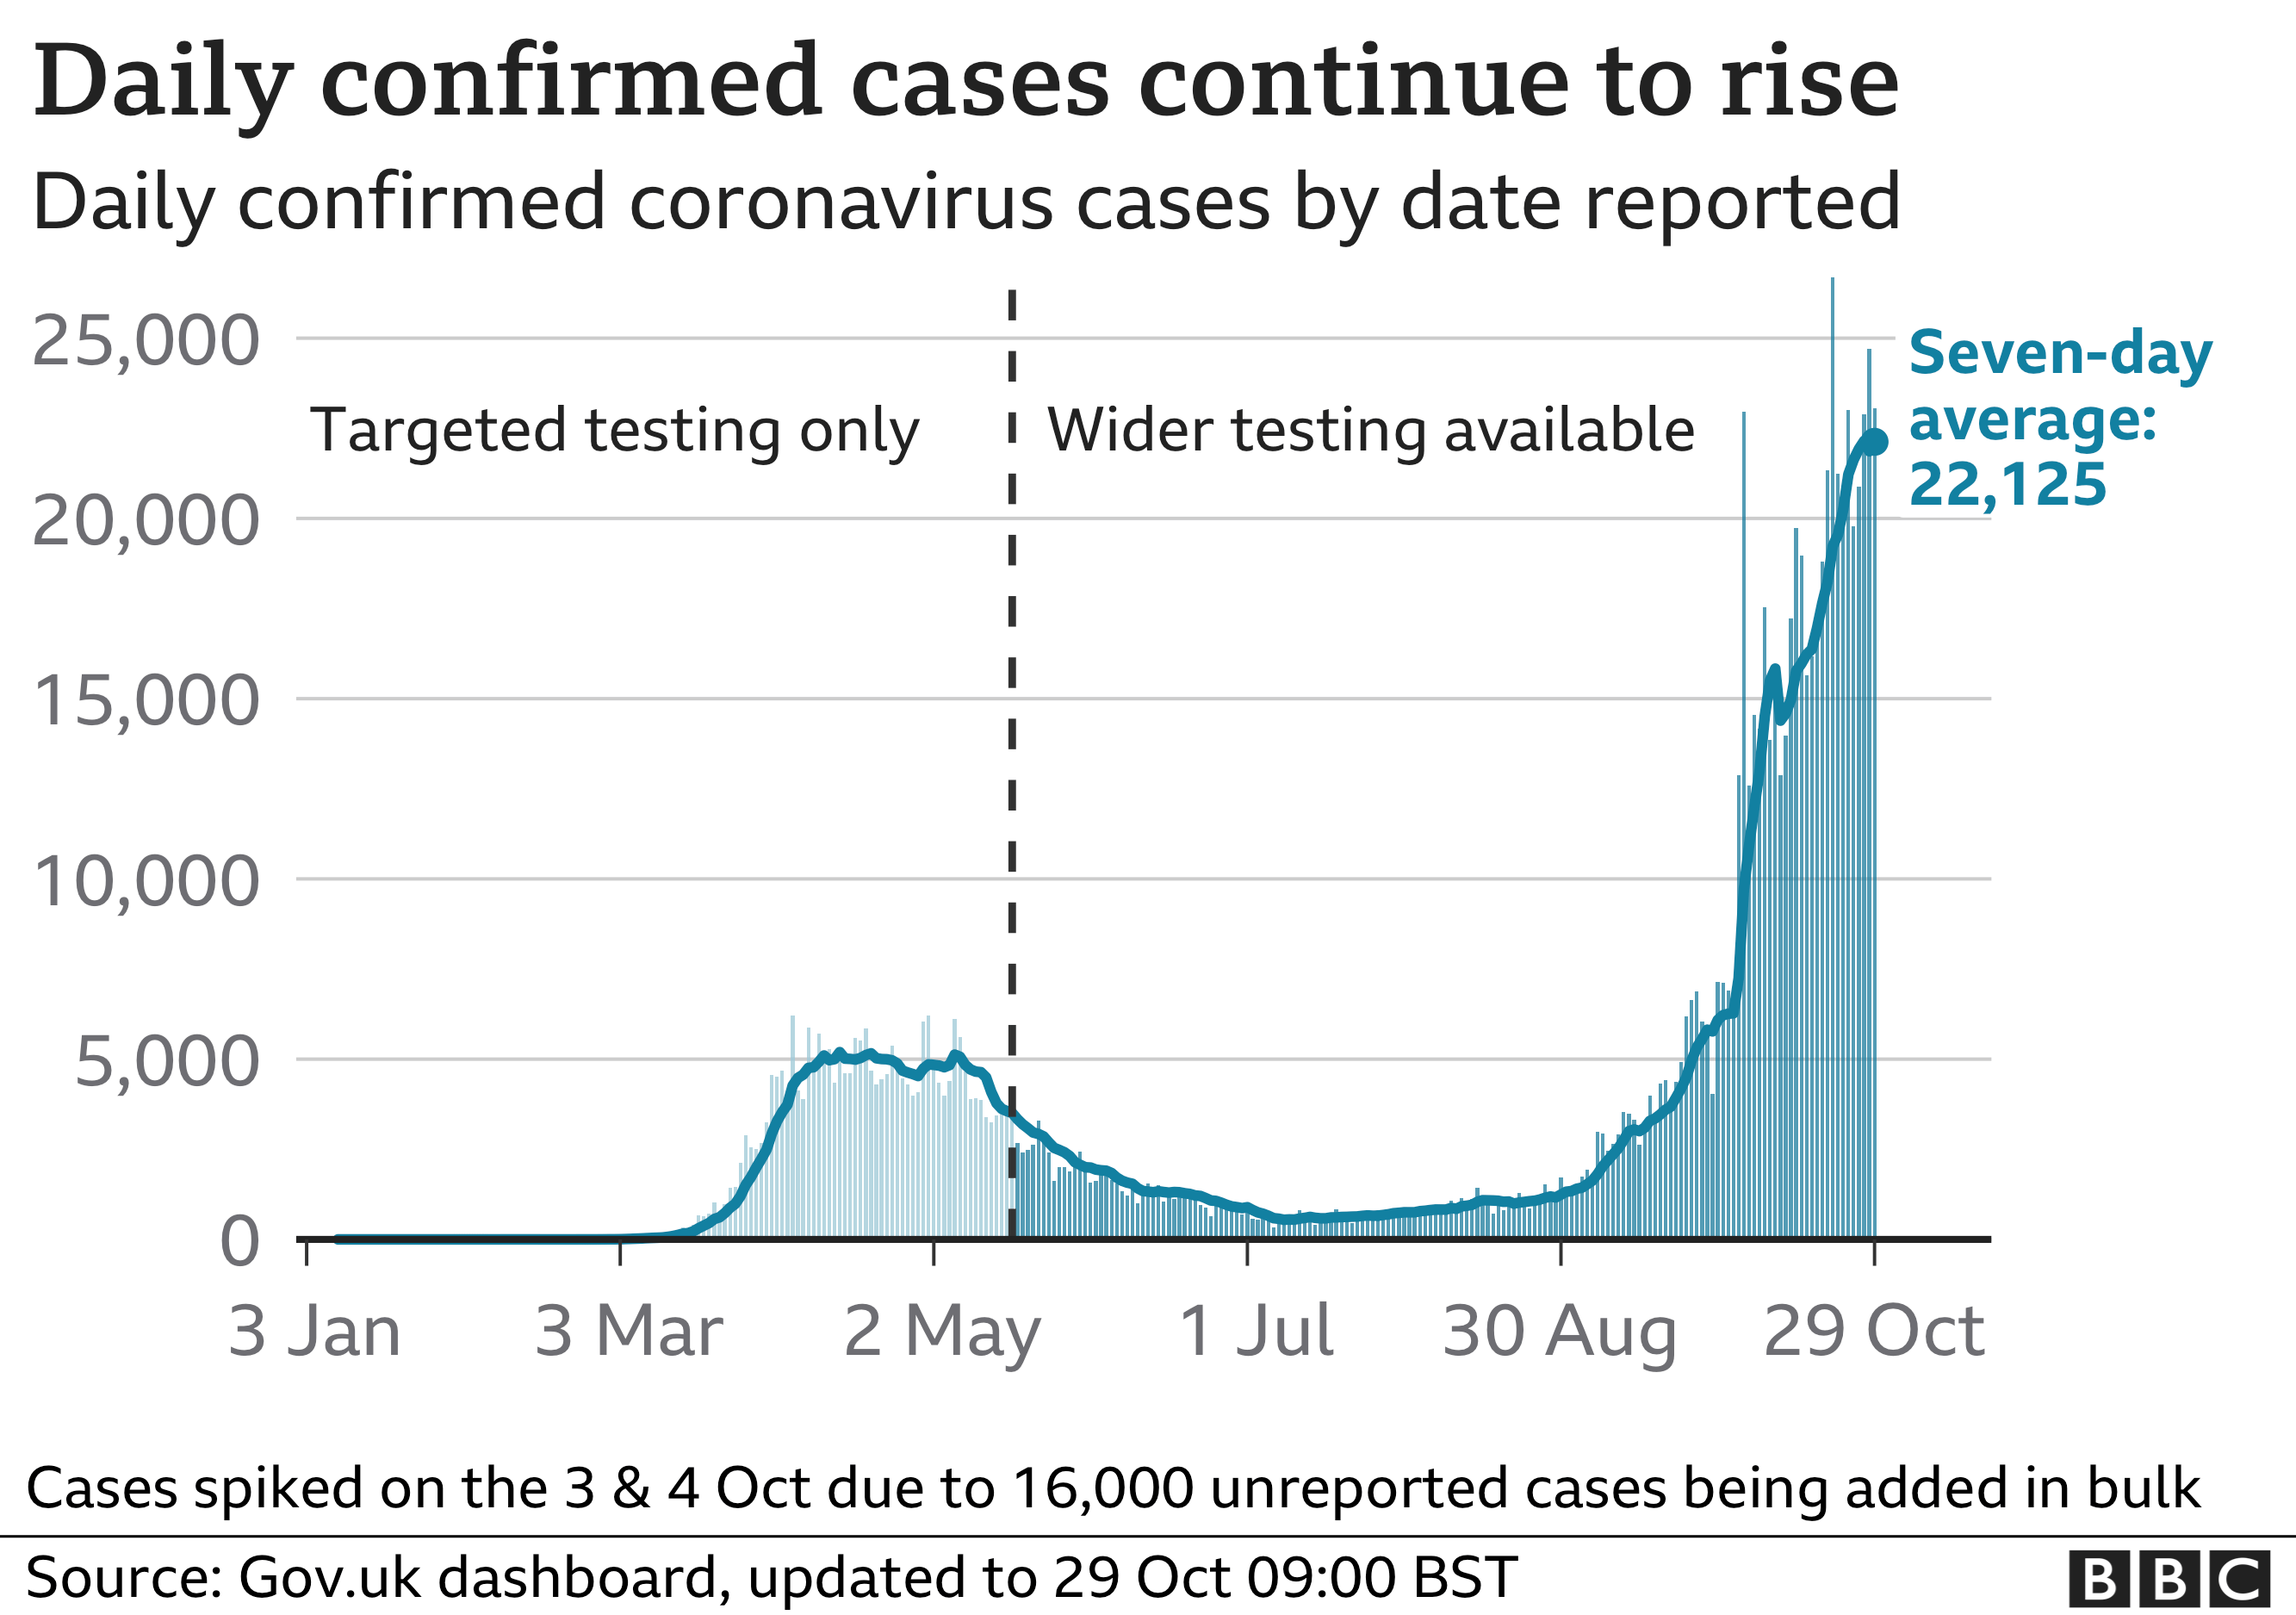 Chart shows cases are continuing to rise steeply